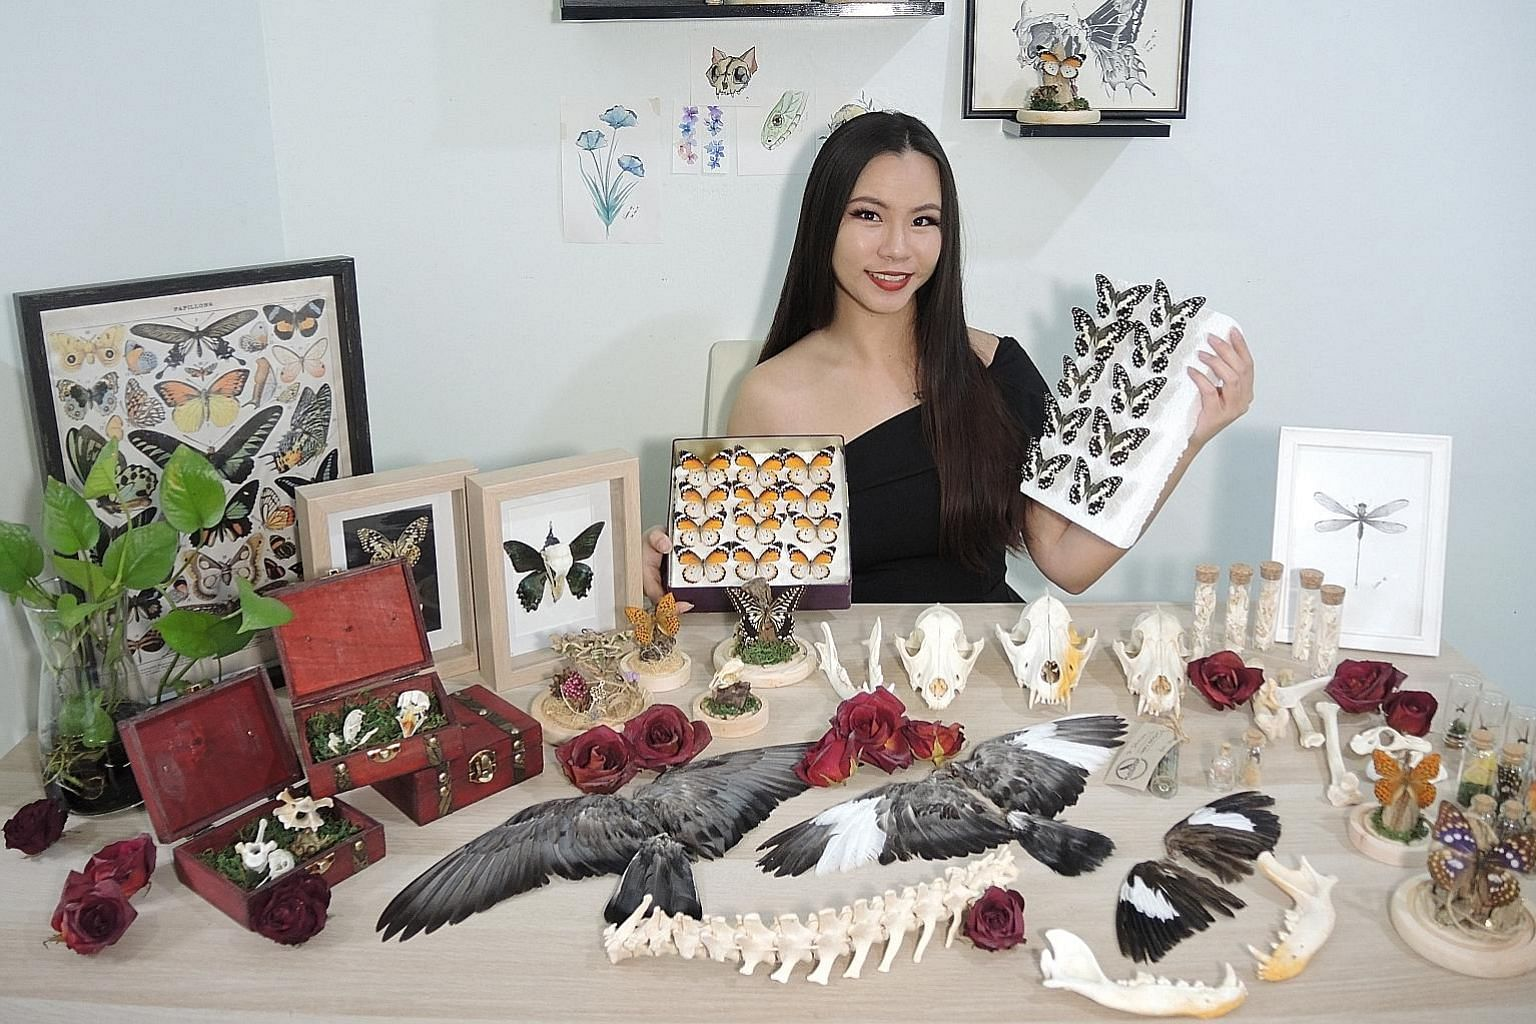 Ms Vivian Tham, who is pursuing a master's degree in pathology, preserves specimens such as bees, butterflies, mice and dead pets, and sells her works on Carousell.